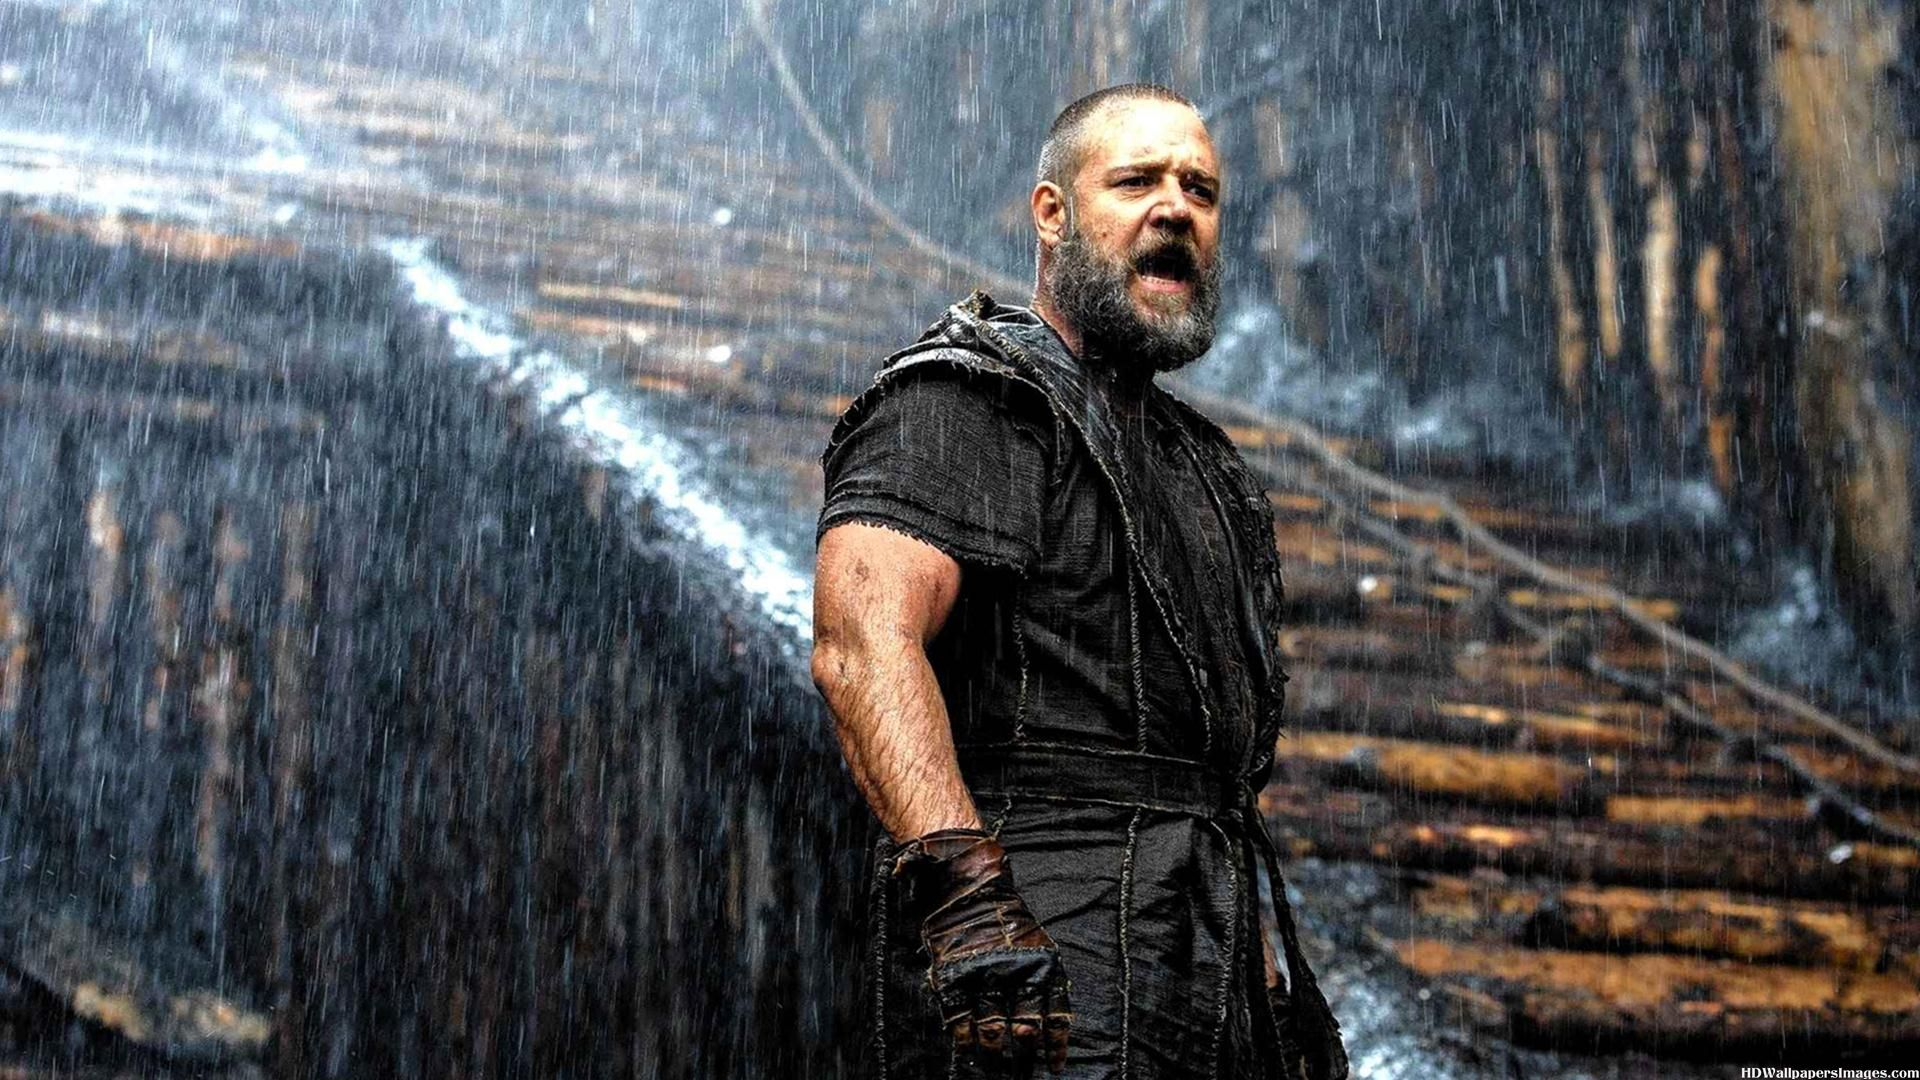 noah movie poster At First Glance –